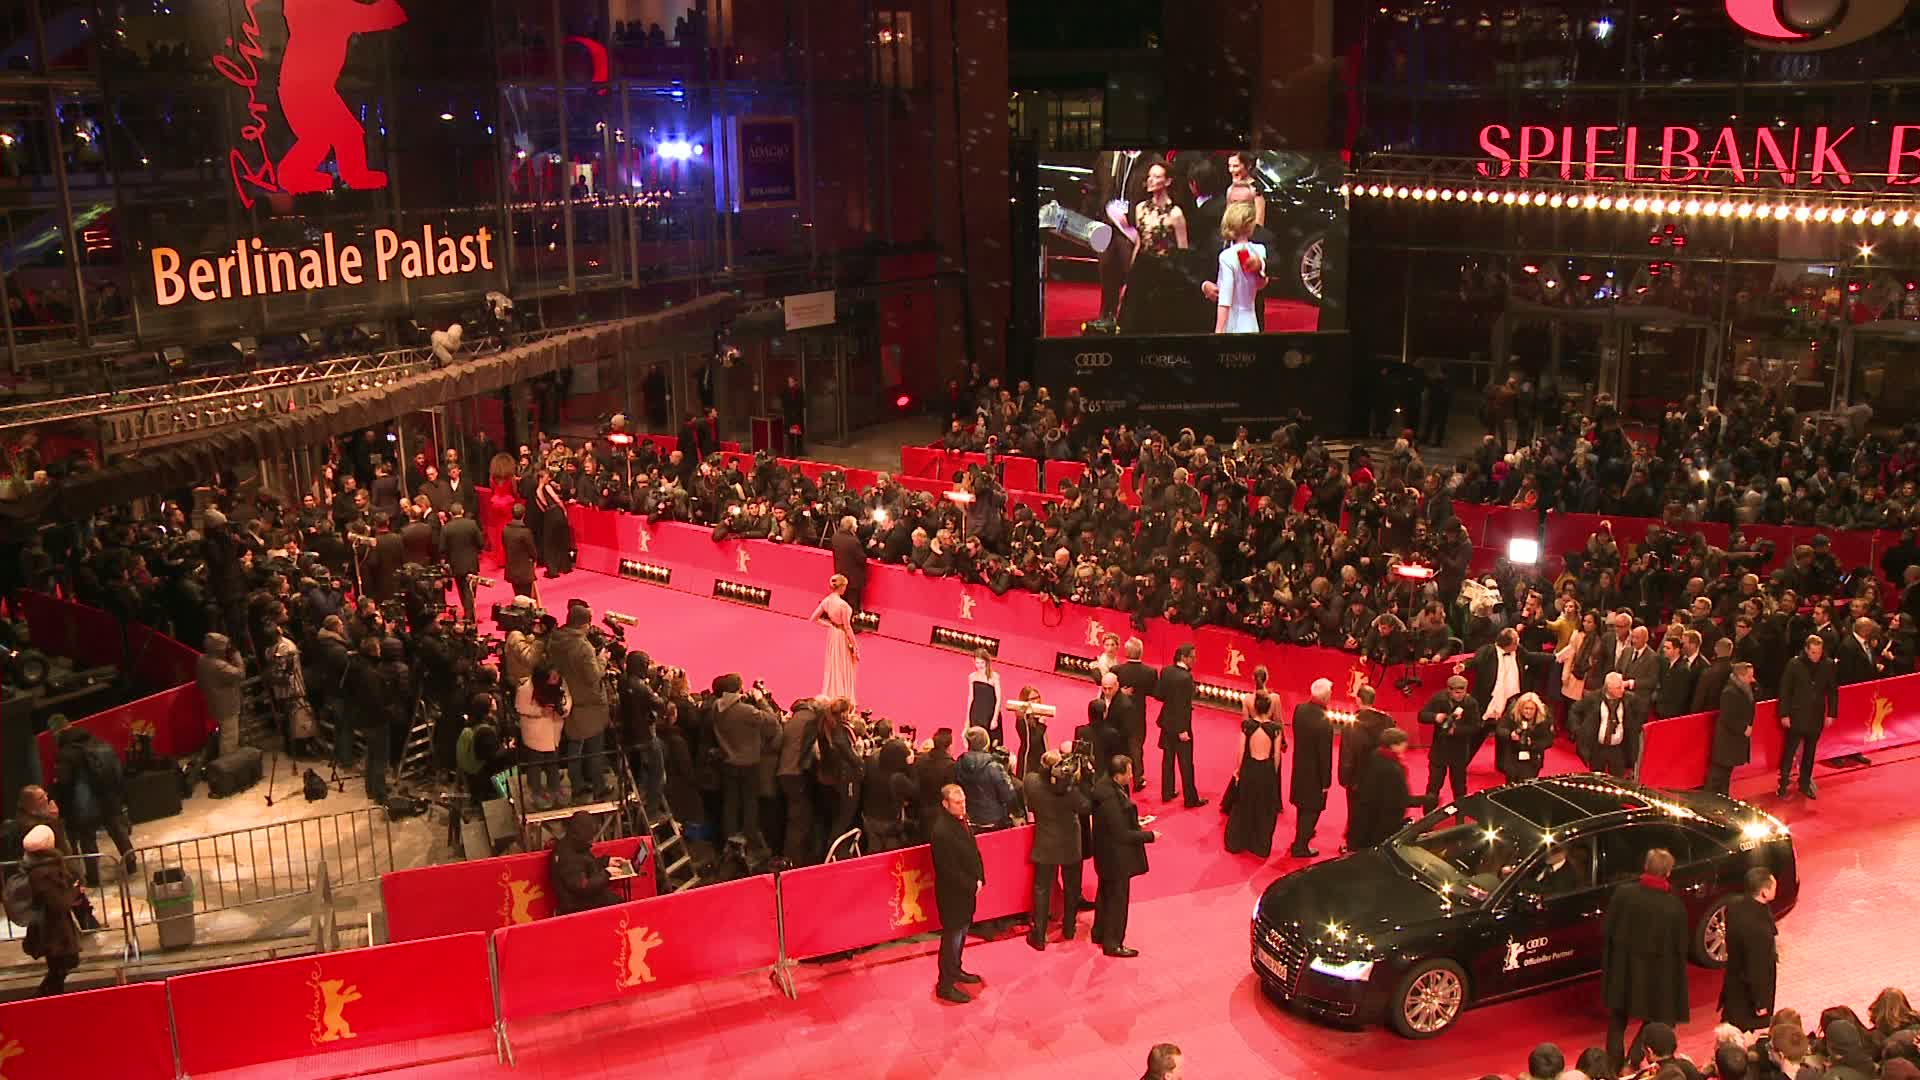 Berlinale 2015: Audi and the Berlin Film Festival